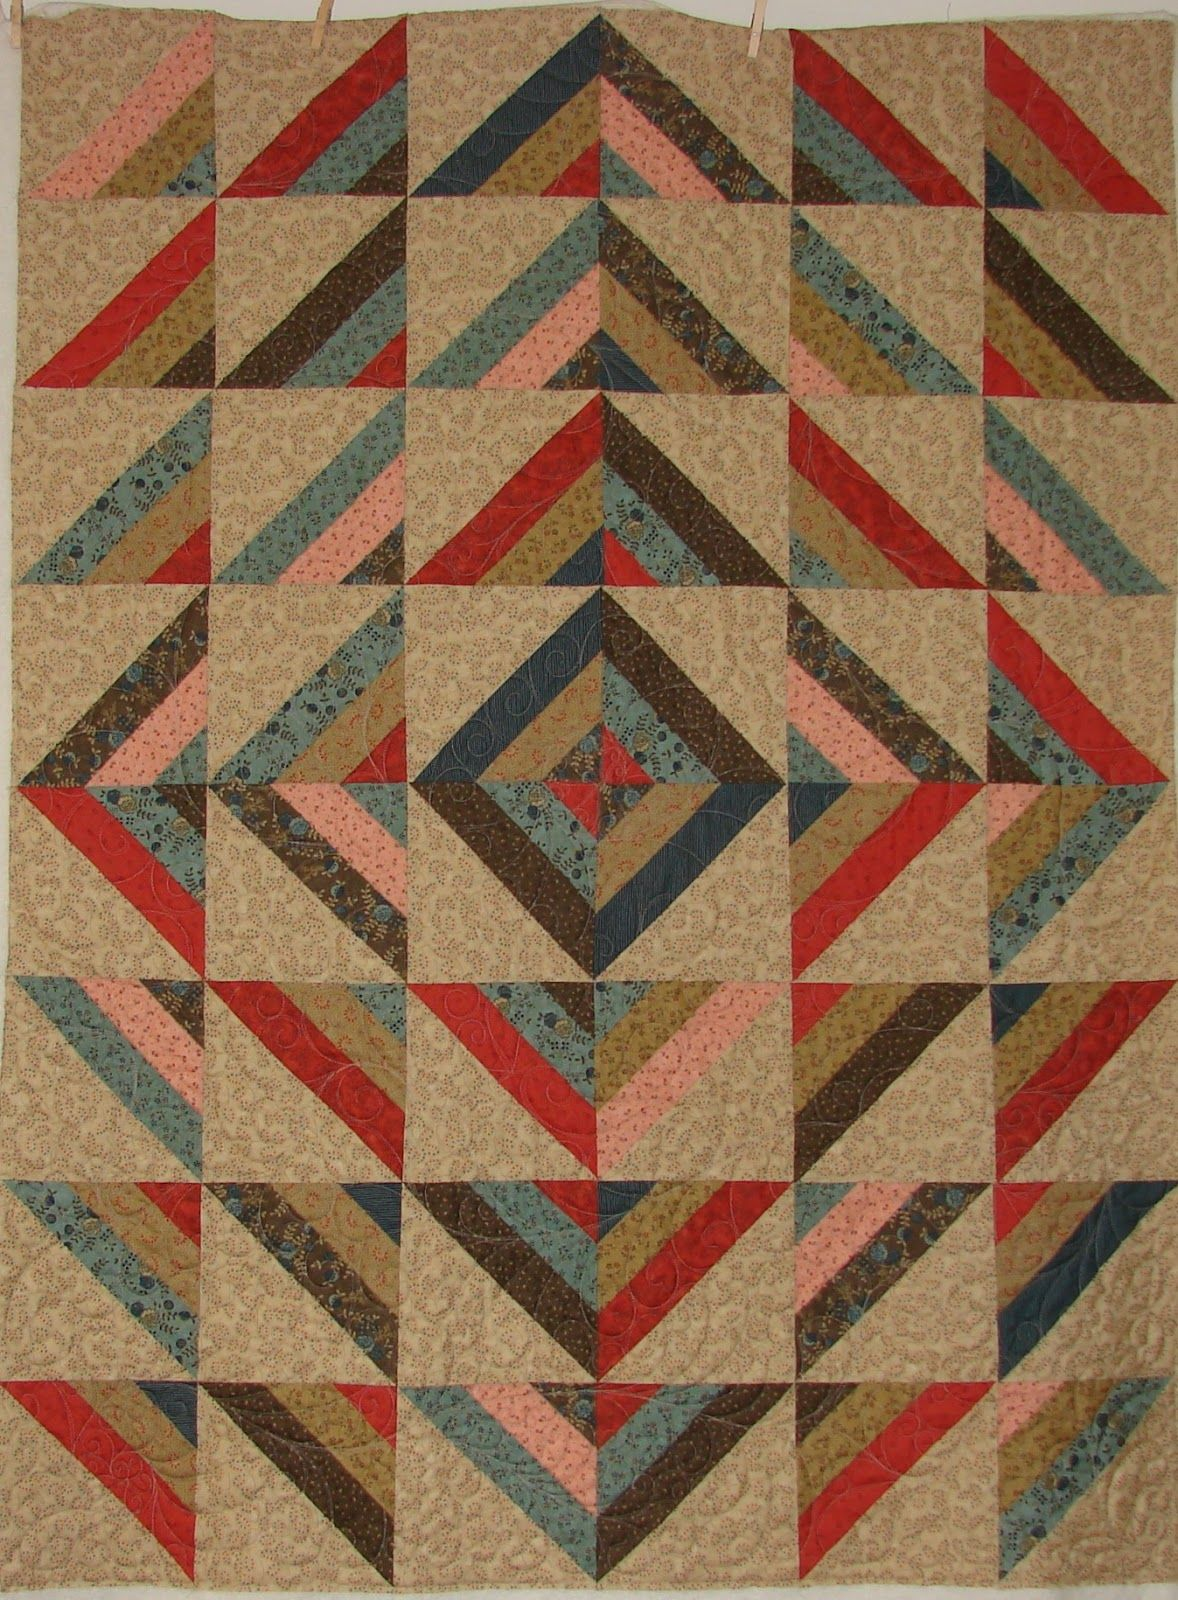 strip+tube+quilts | Strip Tube Quilt | Quilts | Pinterest | String ... : tube quilt pattern - Adamdwight.com